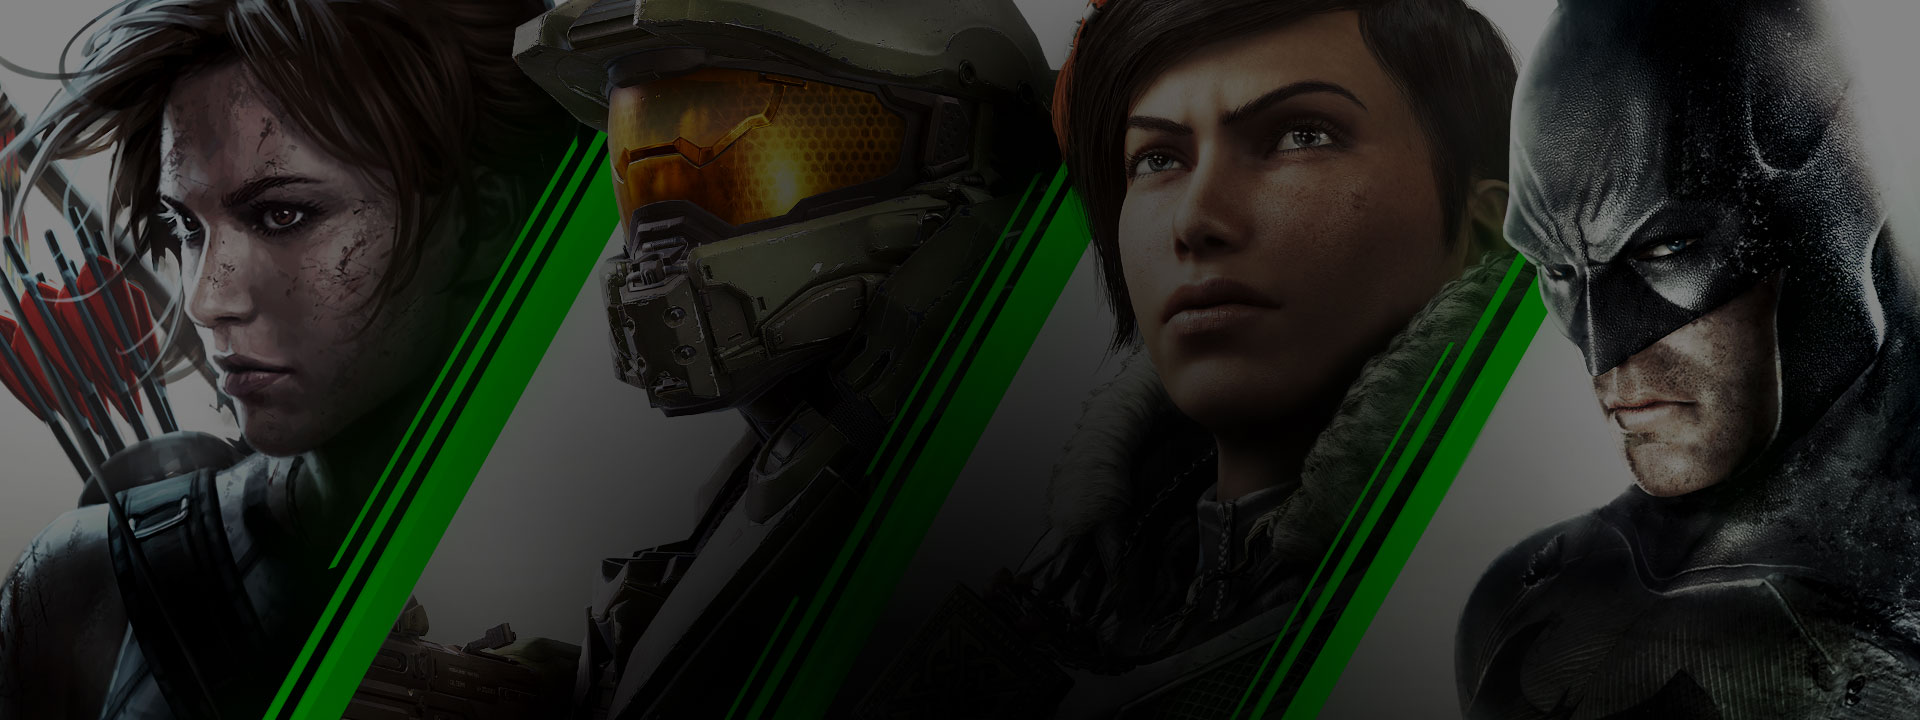 Un mix de personnages de jeux Xbox One. Lara Croft, Master Chief, Kait Diaz, et Batman.